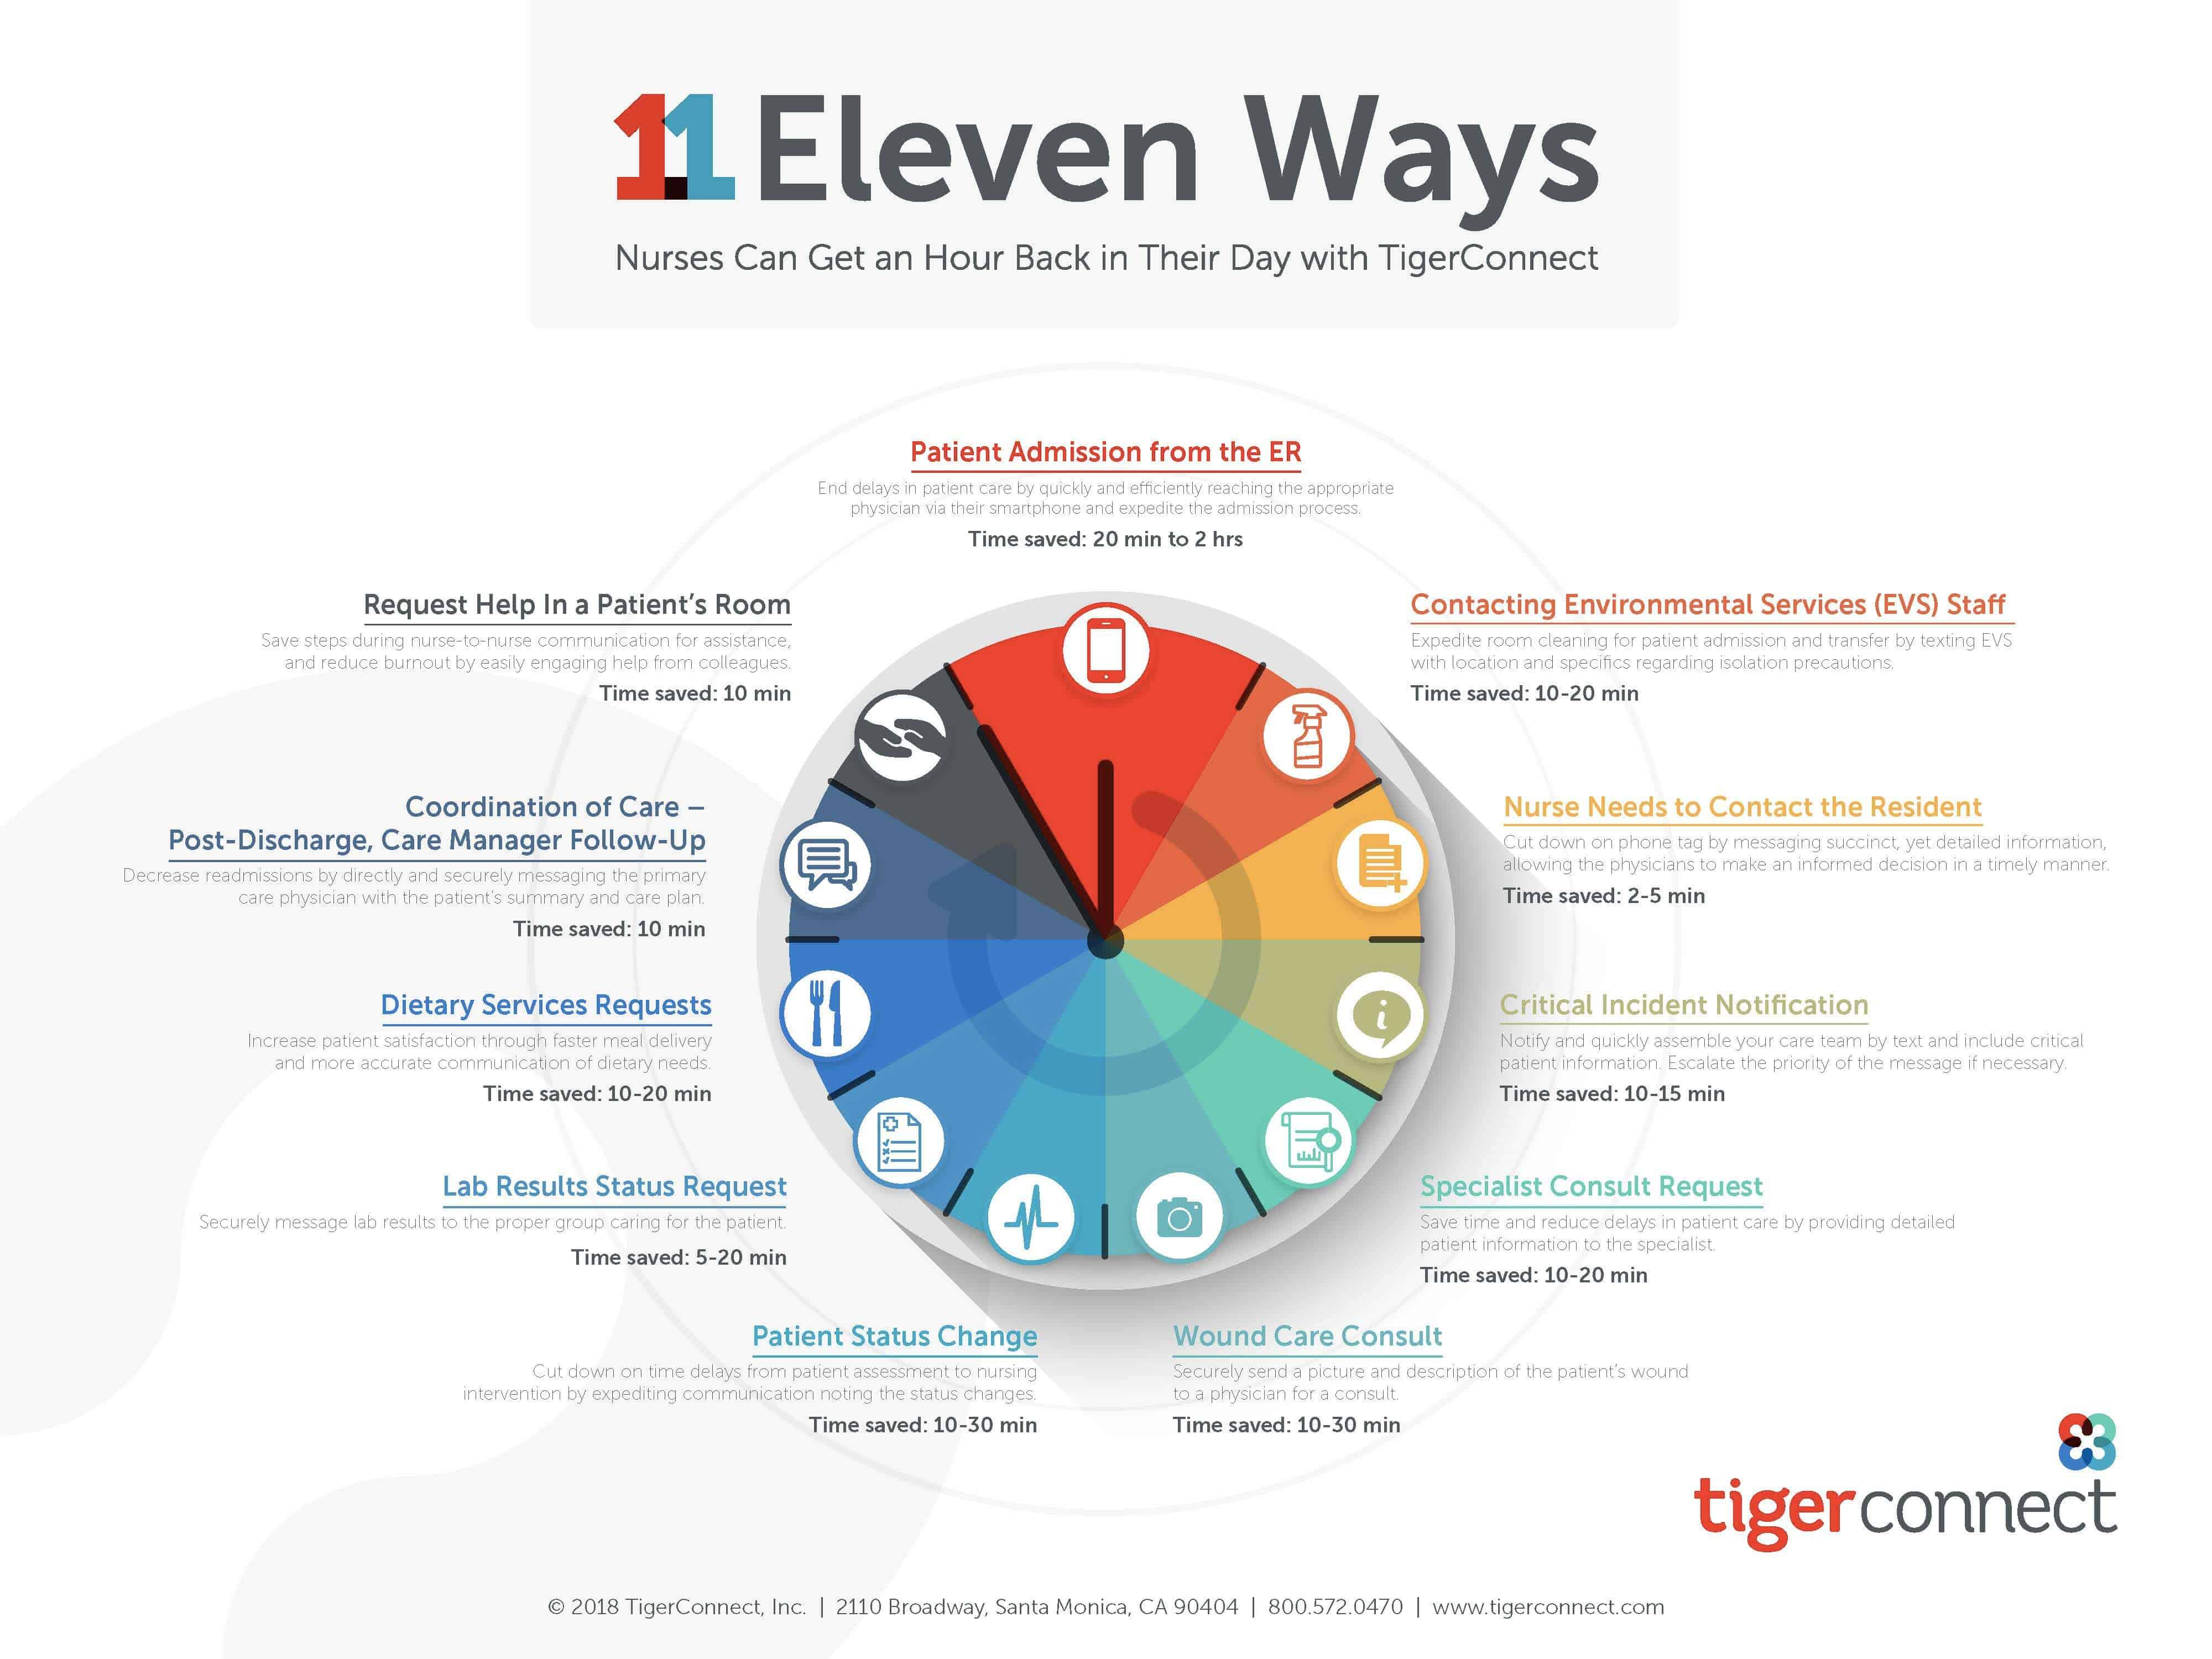 11 Ways Nurses Can Get an Hour Back in Their Day with TigerConnect Infographic